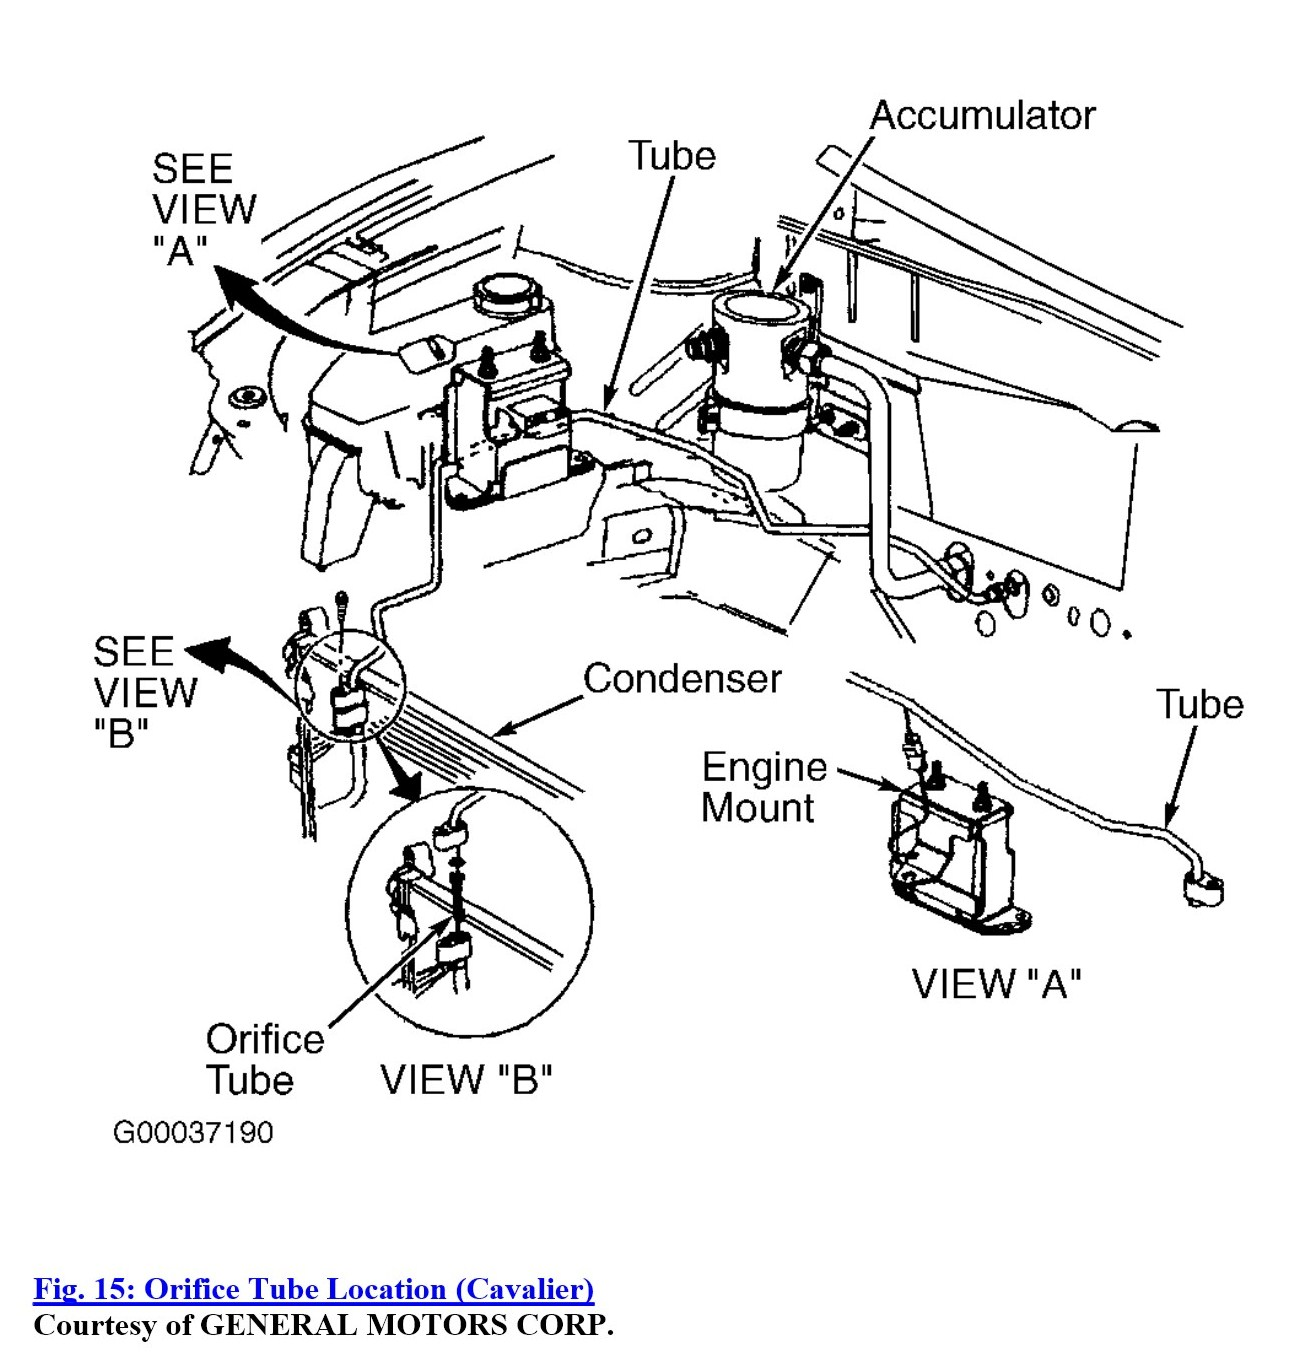 2005 pontiac vibe thermostat diagram html